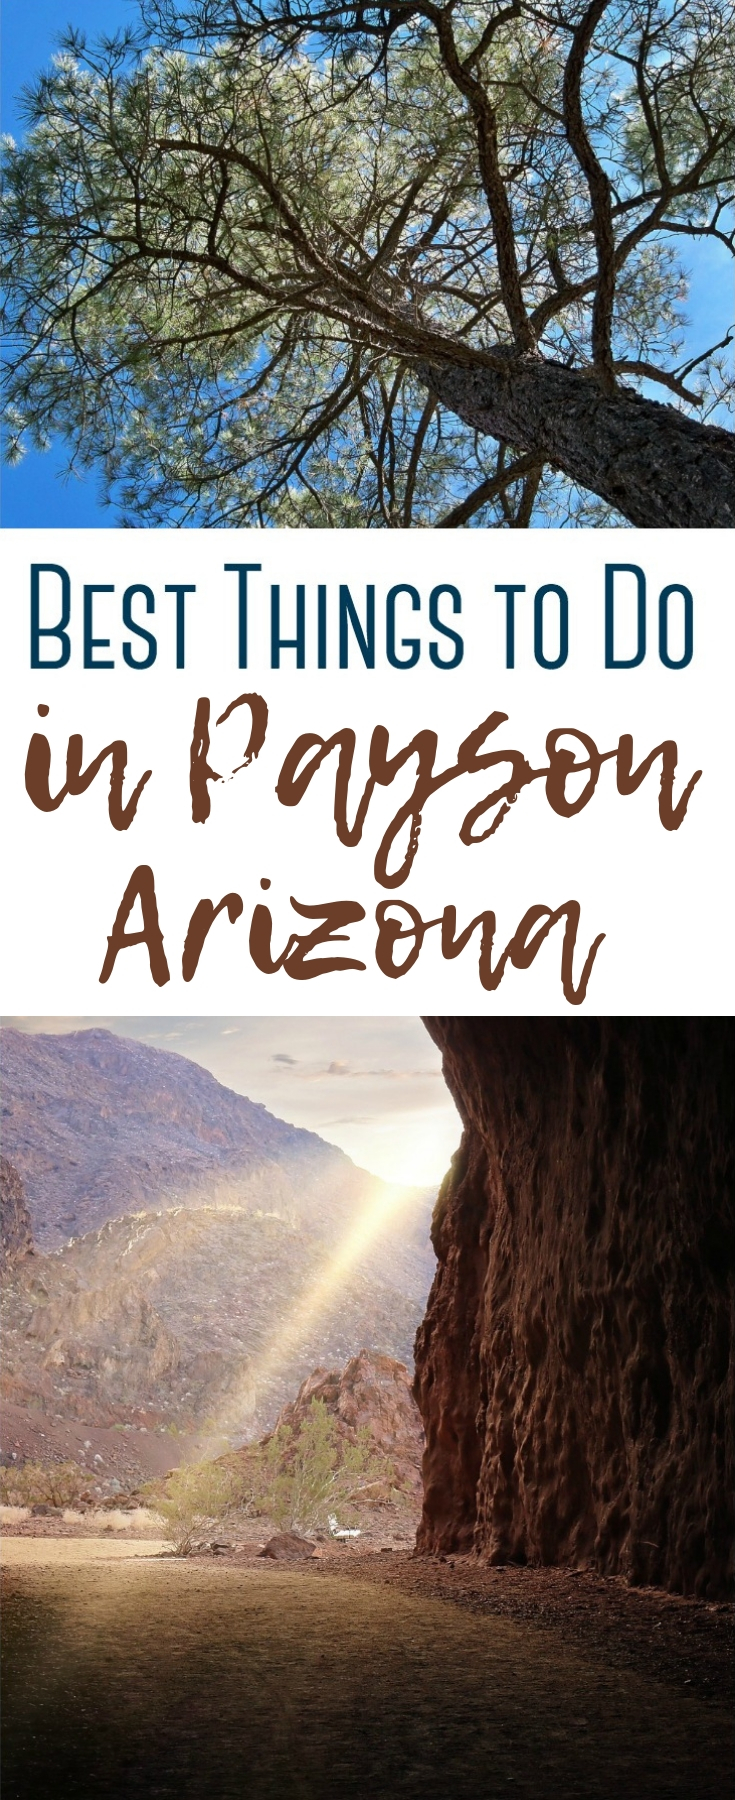 Over 10 of the fun and affordable things to do in Payson - from historical attractions to natural scenery, and eateries to help you enjoy this Arizona gem!